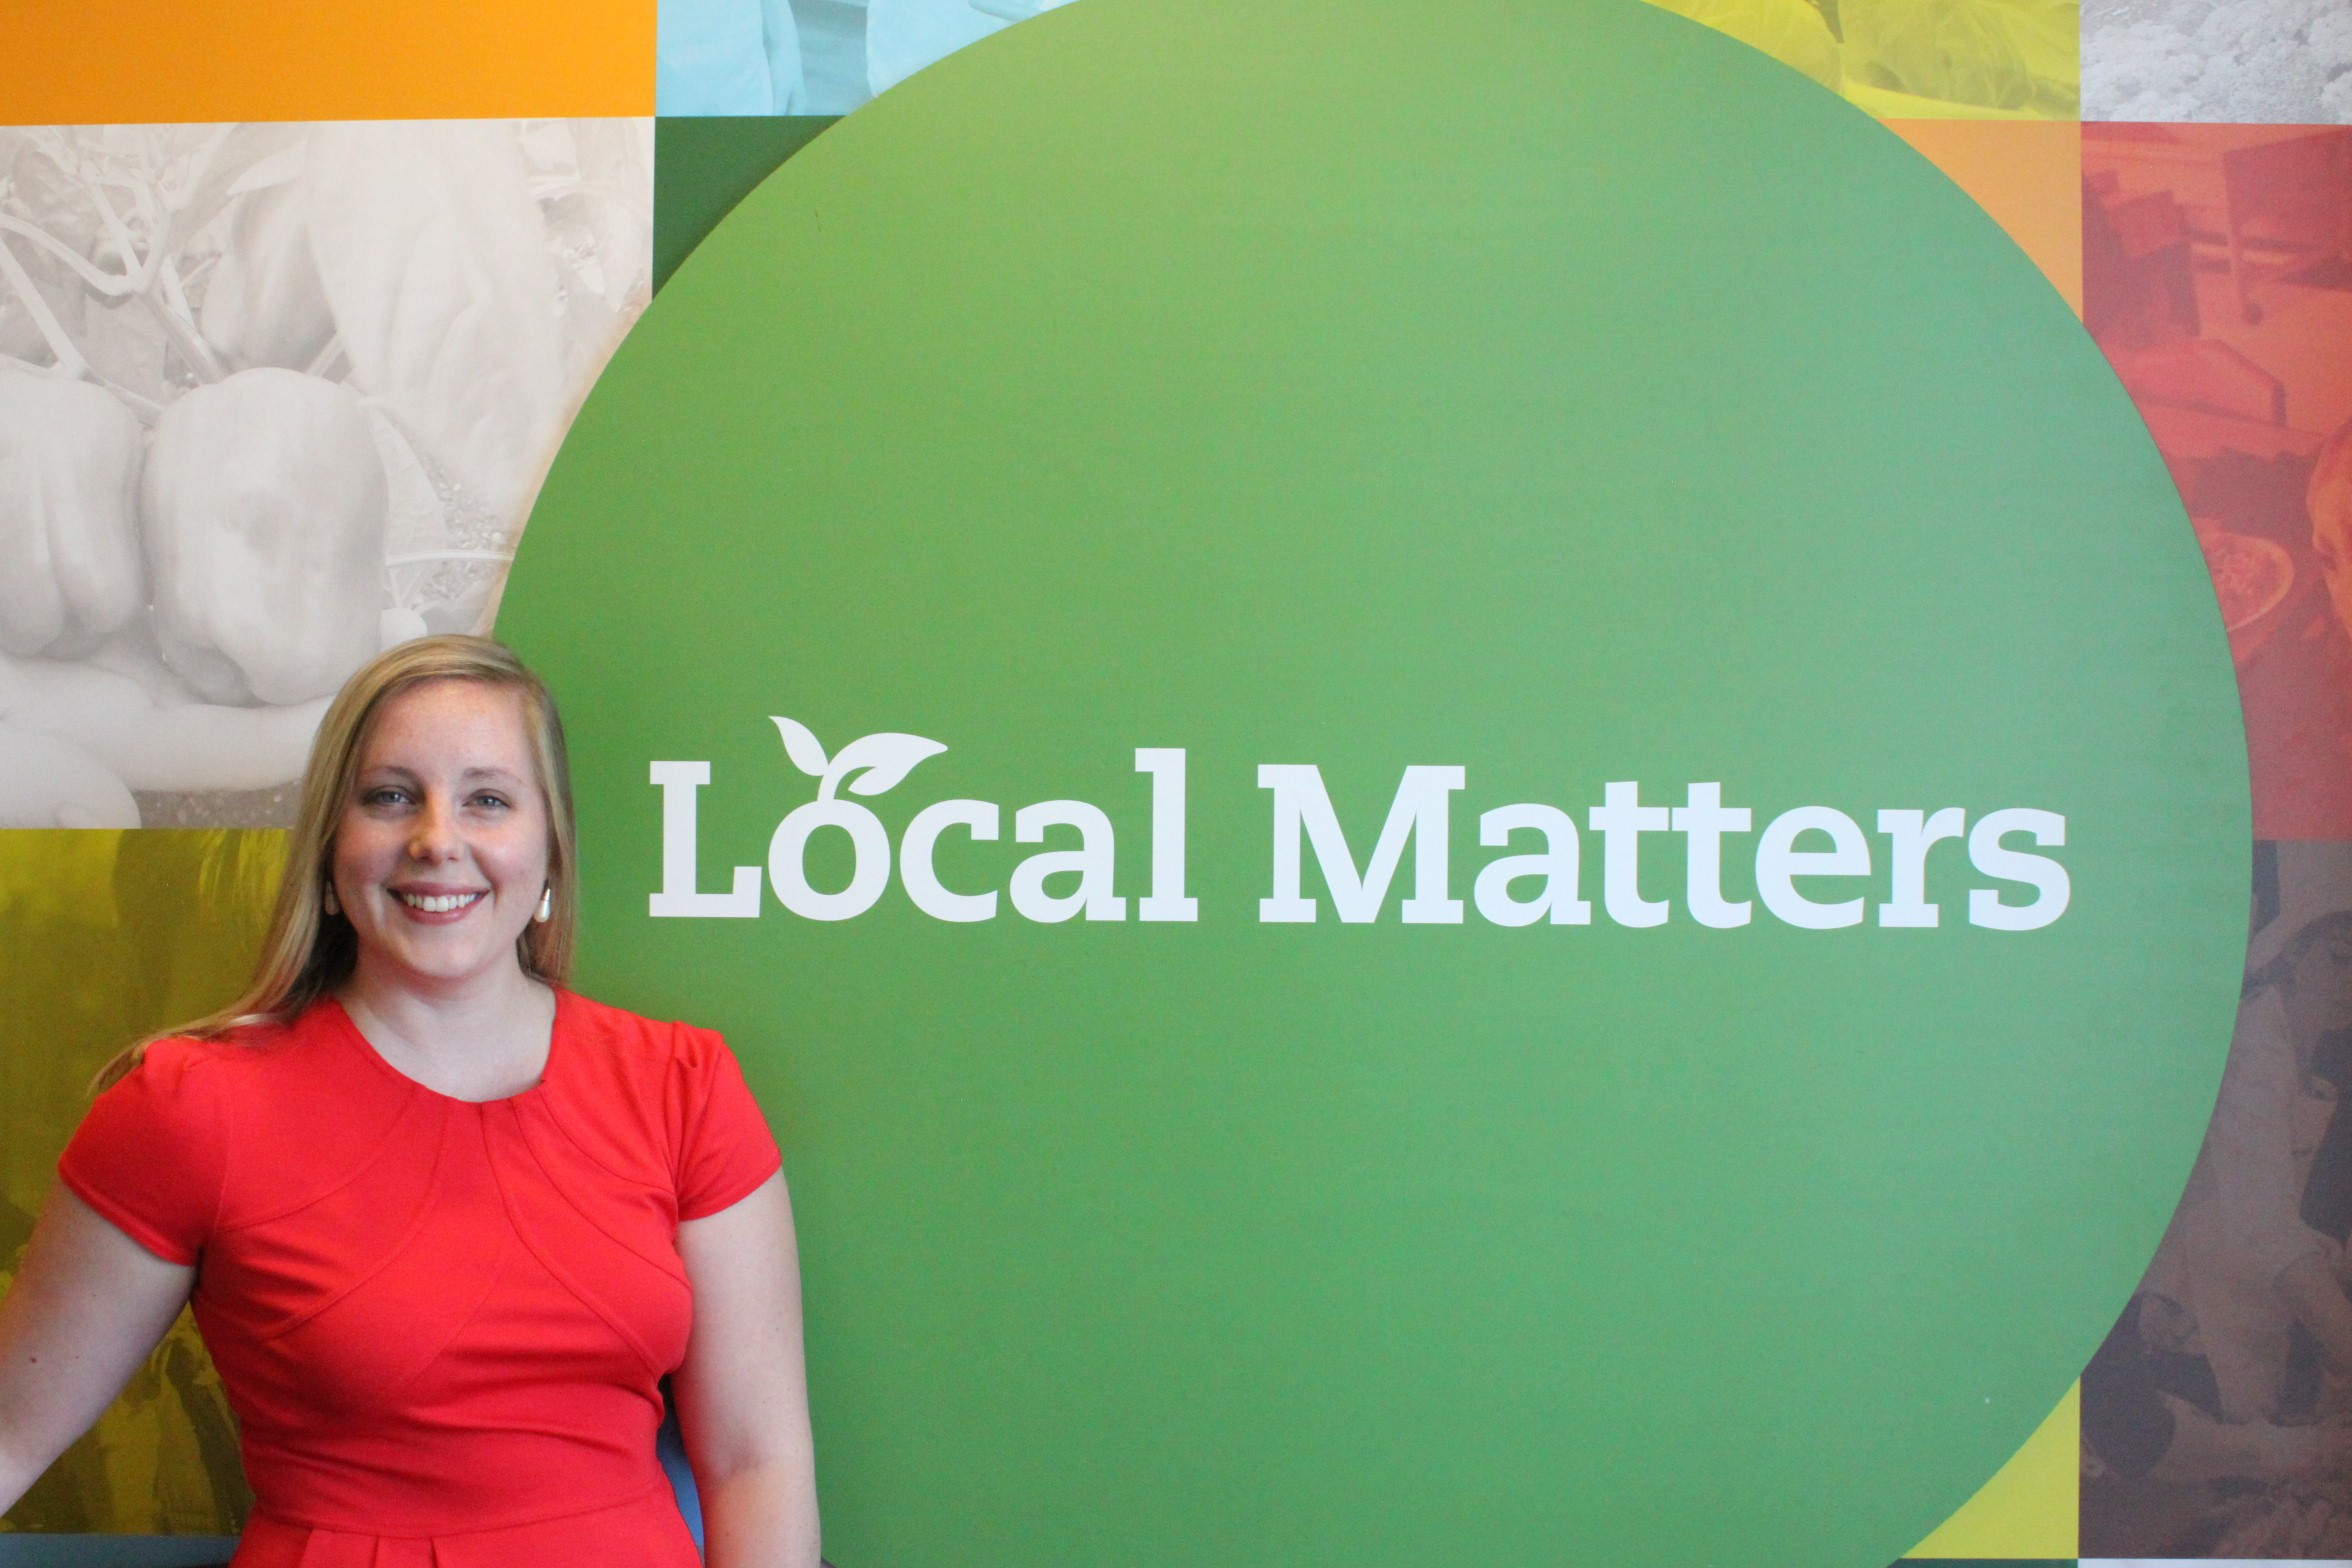 Sarah Wharmby, Local Matters Volunteer & Operations Manager